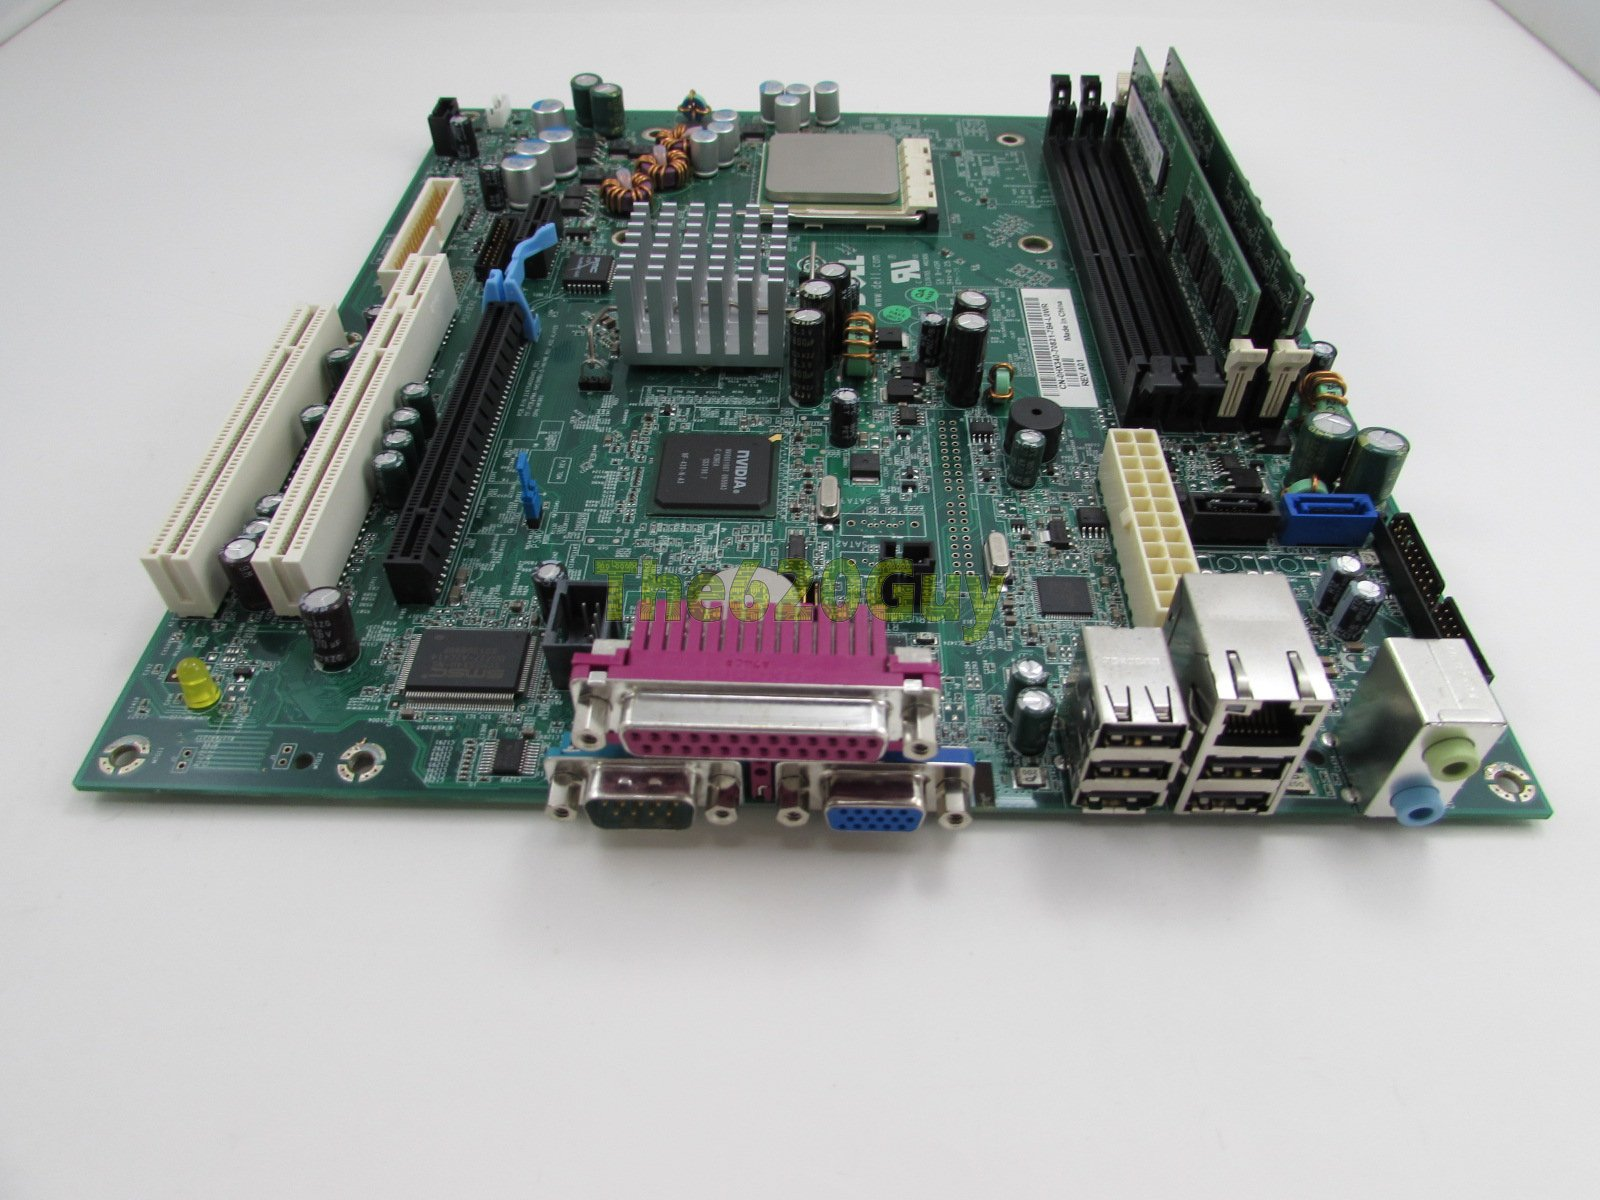 Optiplex 740 pci slots play slots online dell optiplex 3020 small form factor owners manual publicscrutiny Image collections